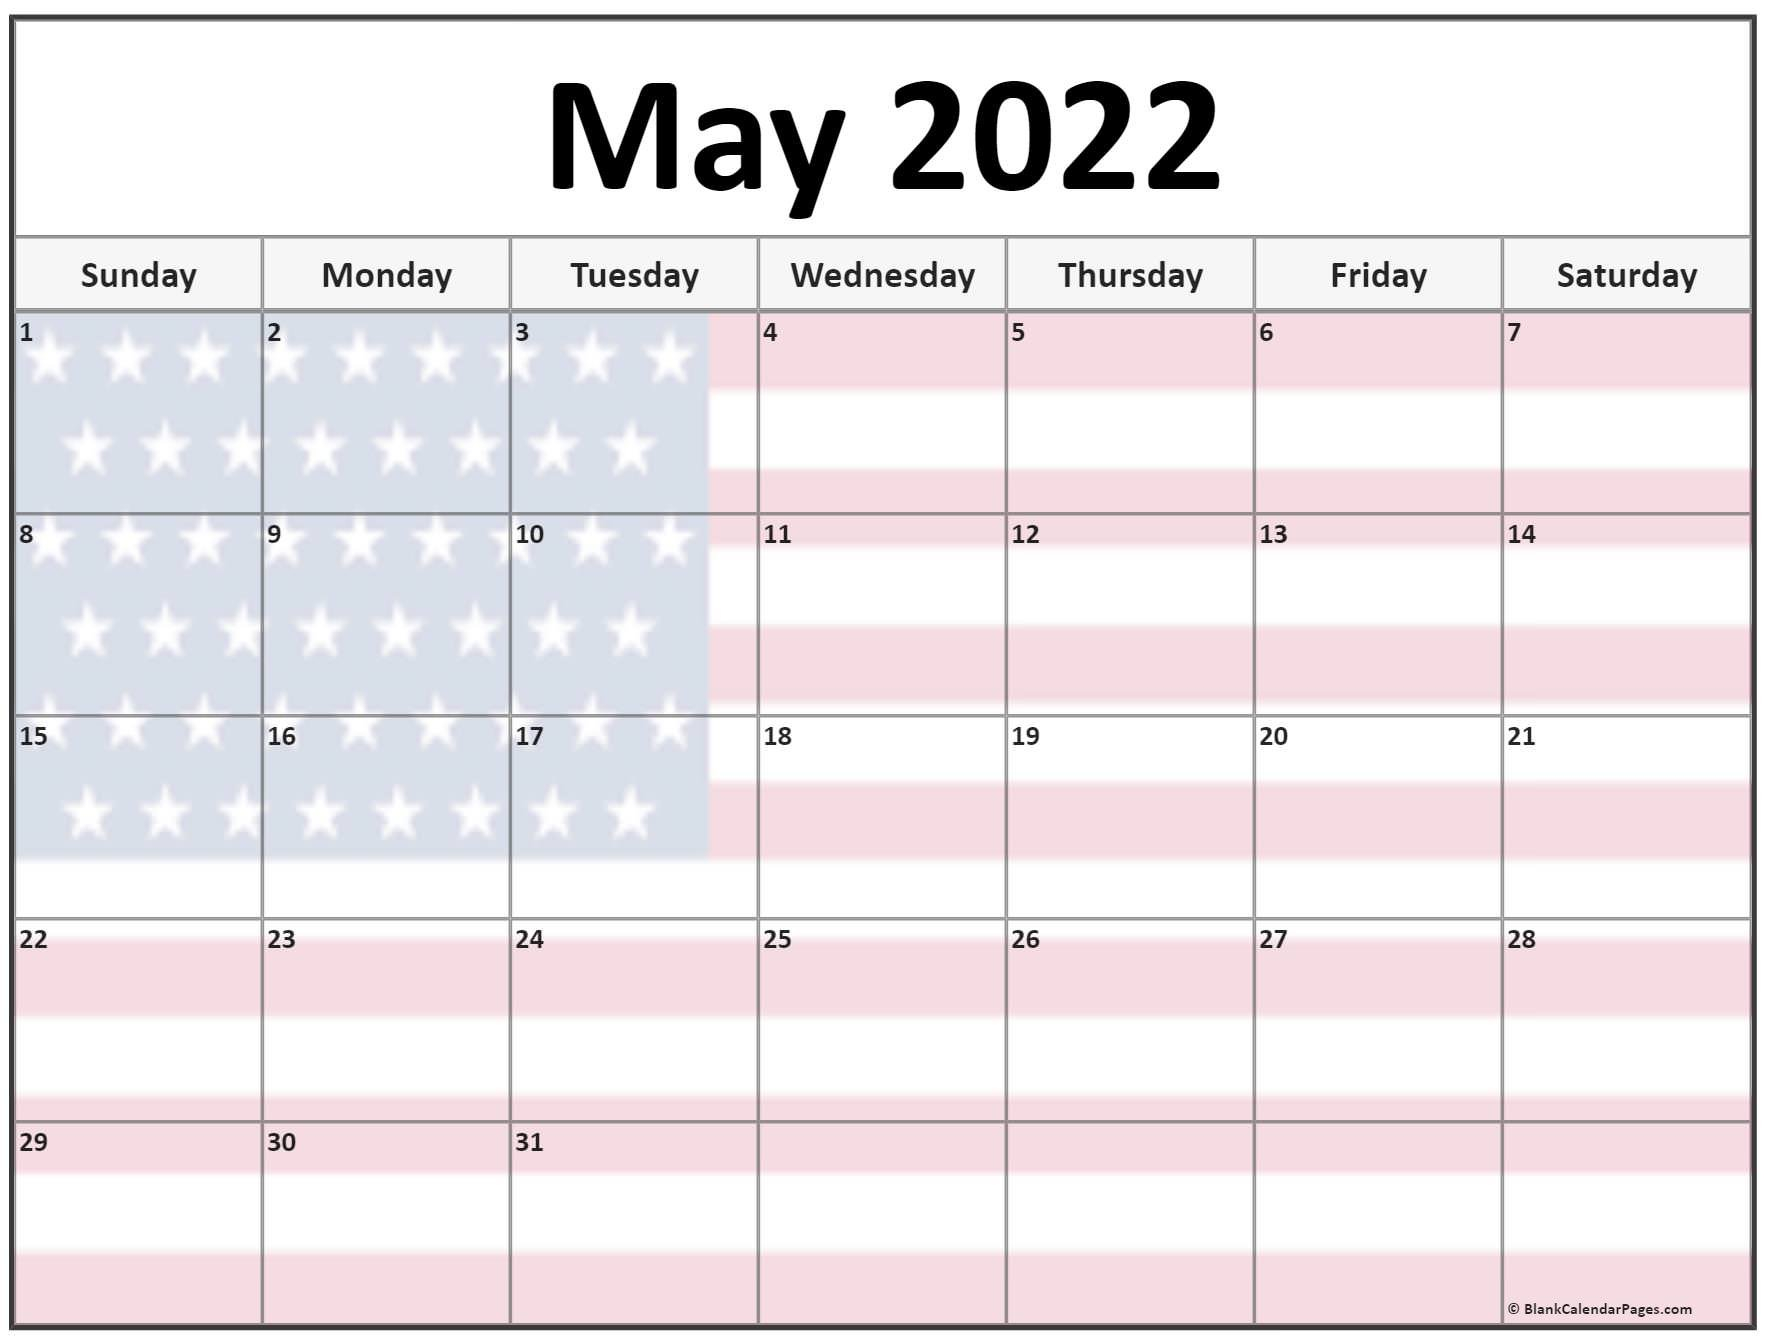 Collection Of May 2022 Photo Calendars With Image Filters. within Printable Calendar May 2022 Photo